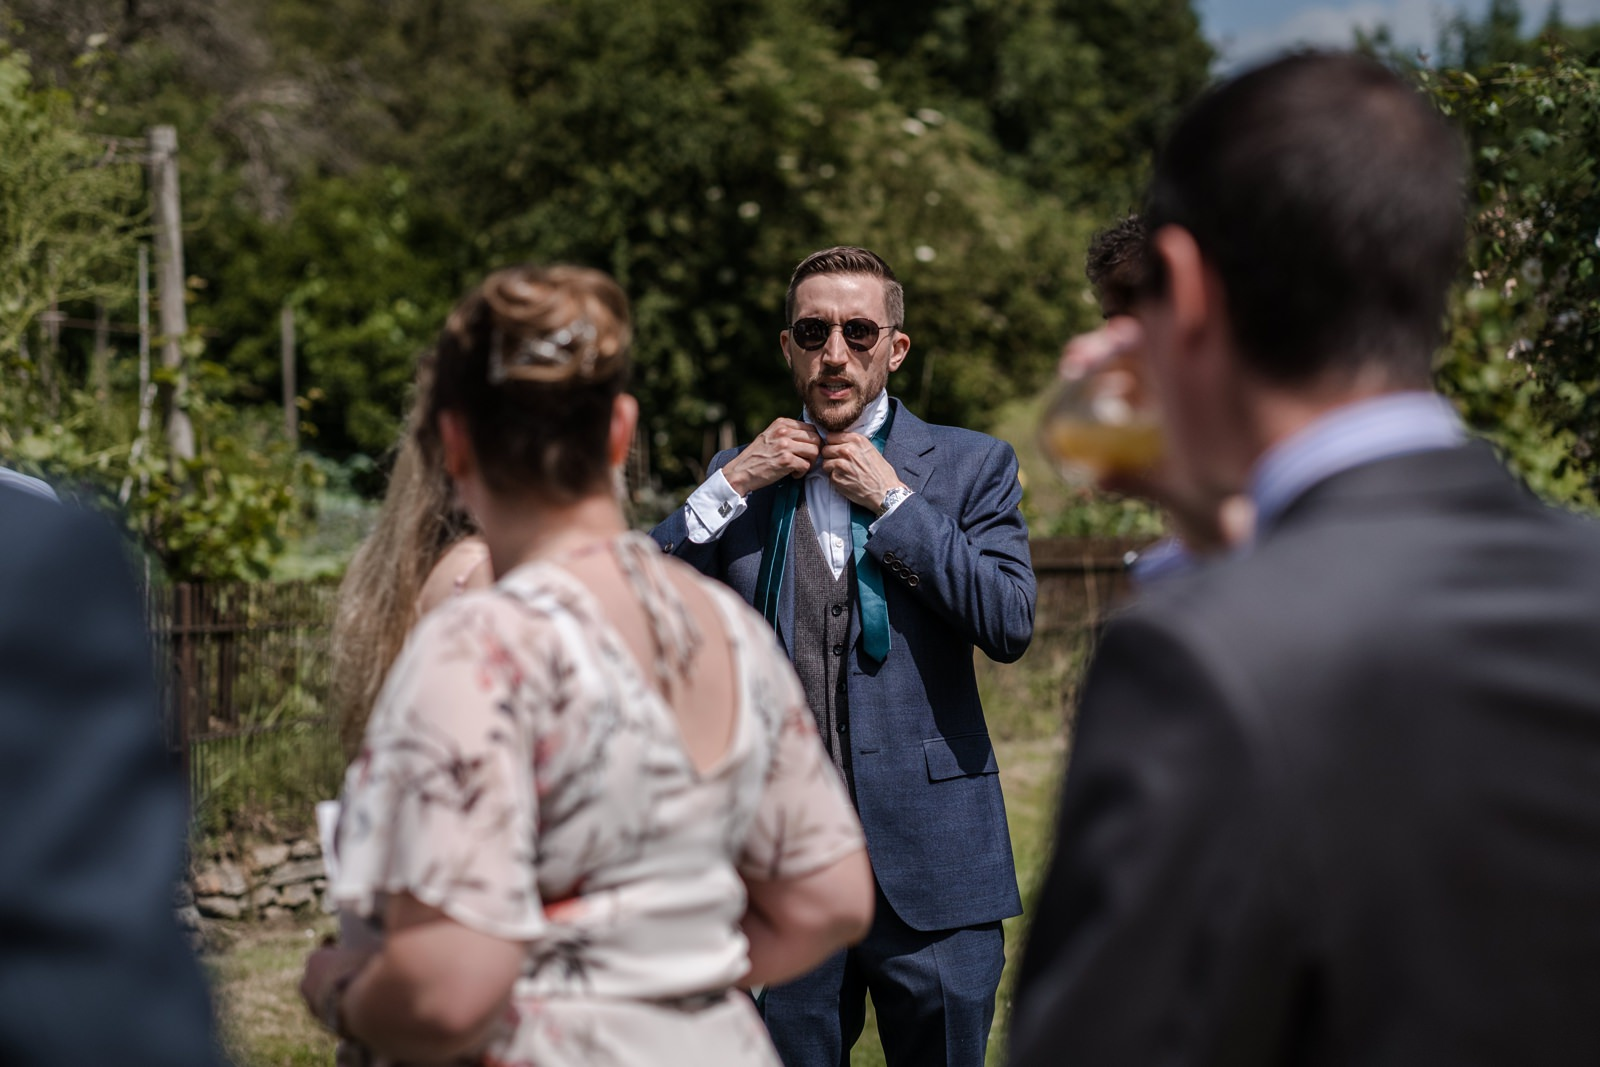 Groom puts on tie for wedding at Gants Mill